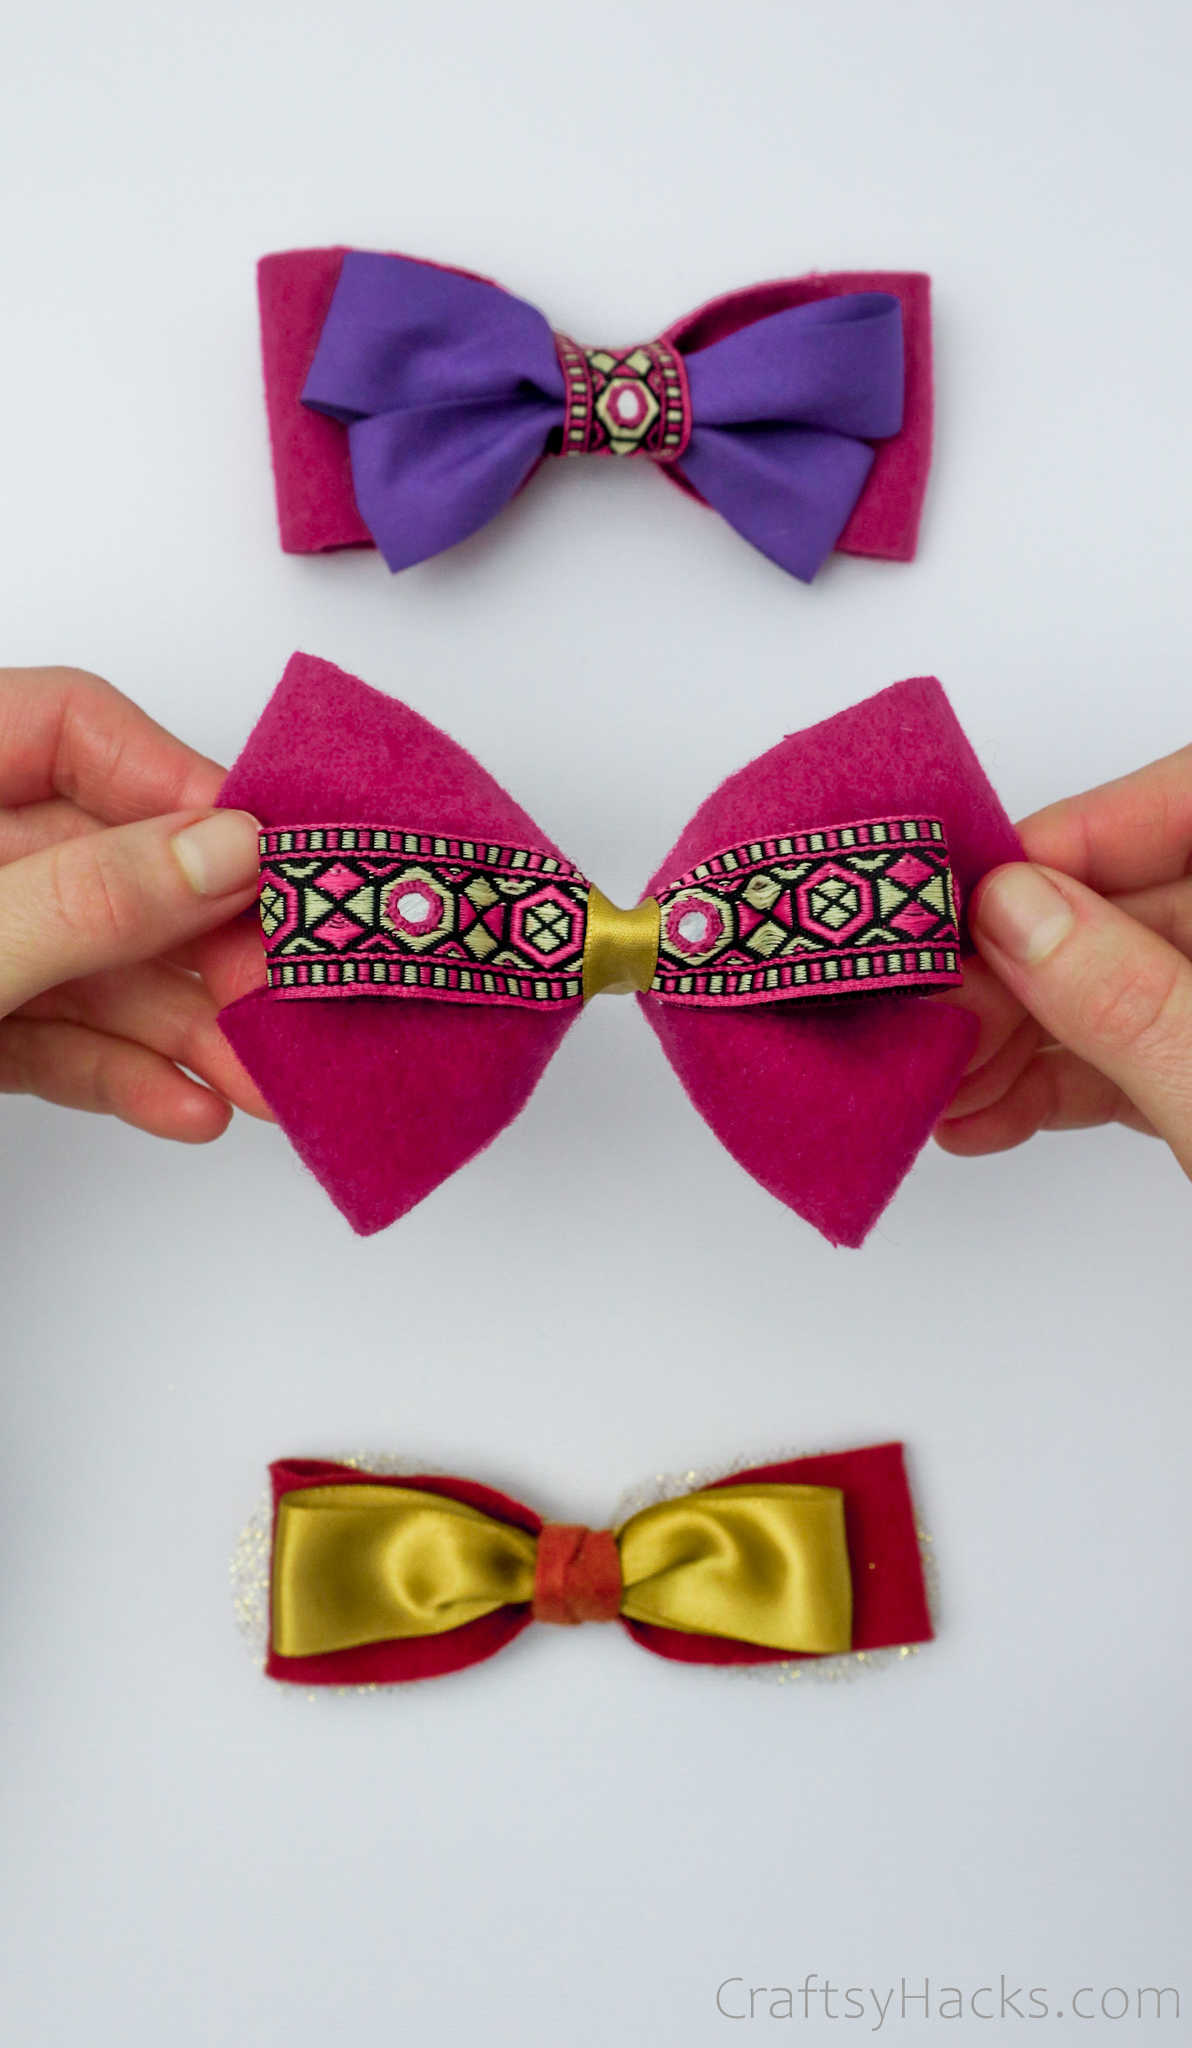 completed set of hair bows